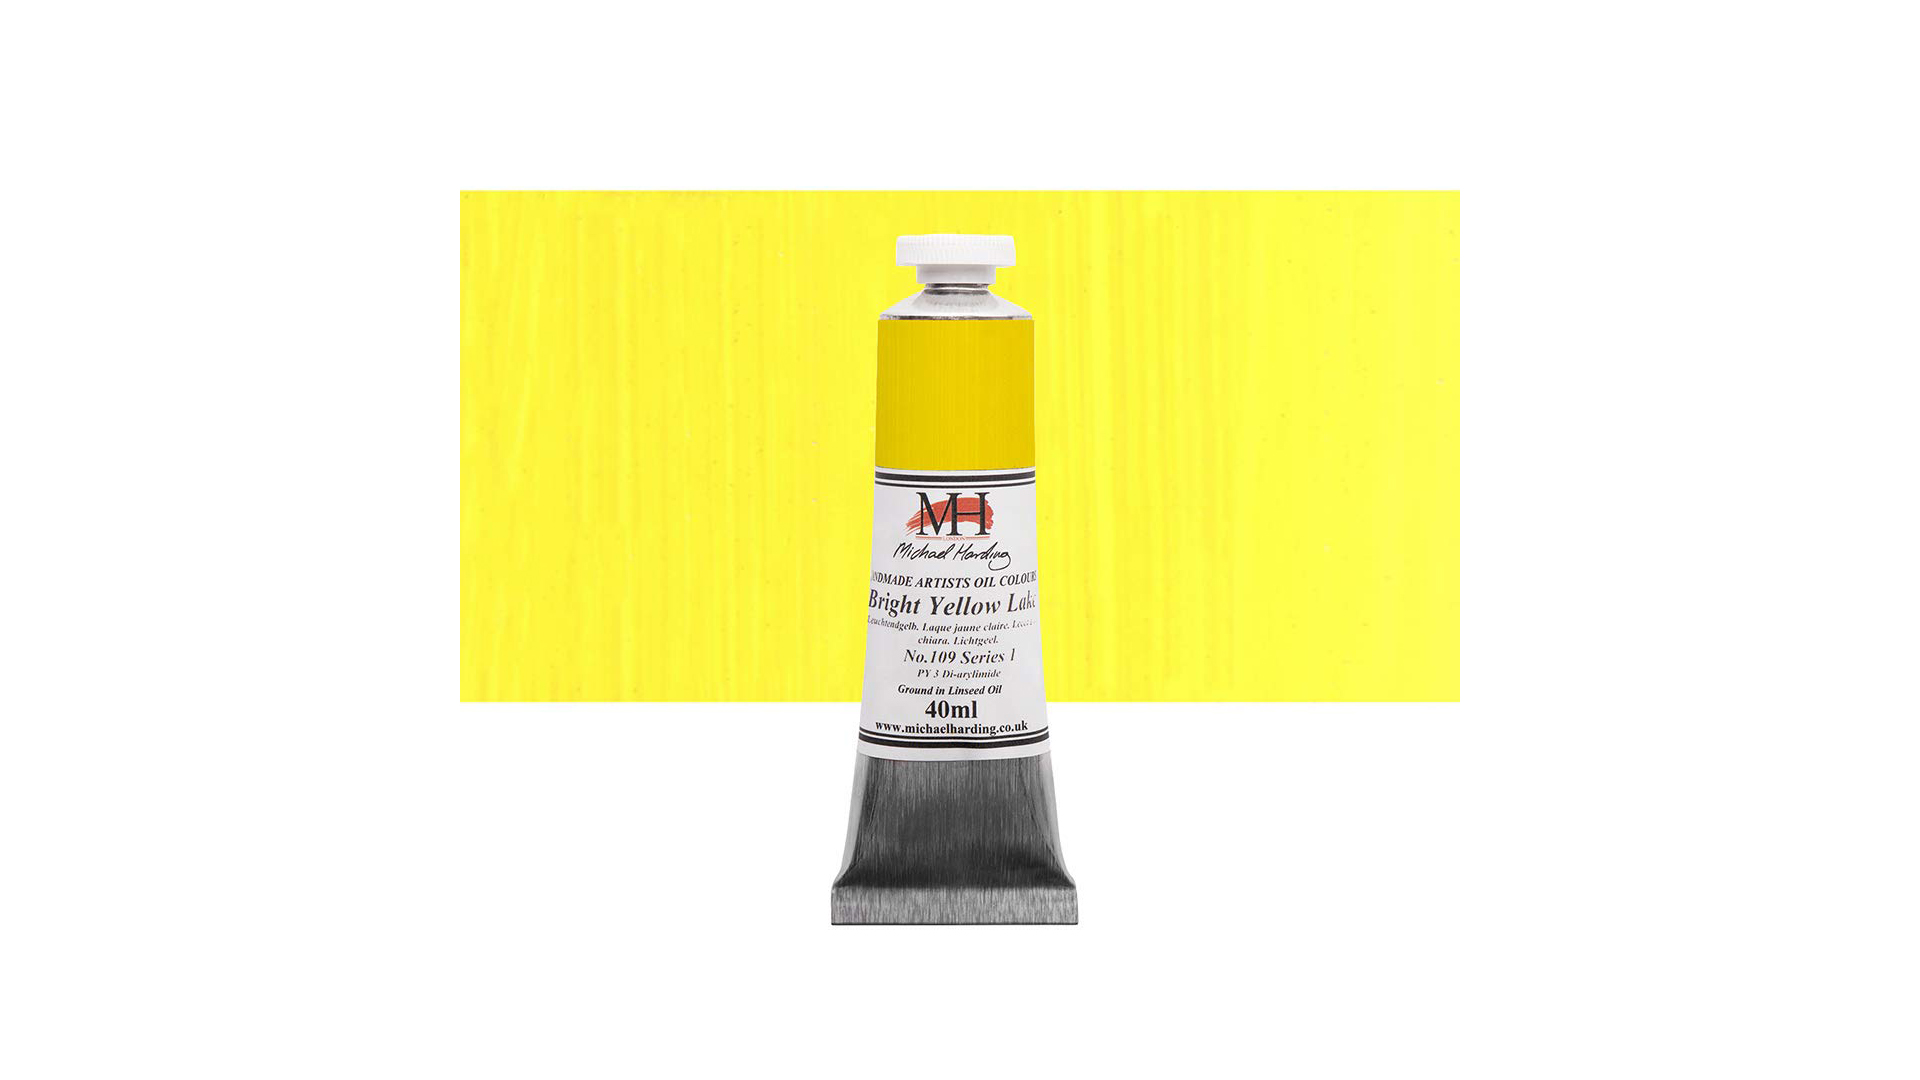 Essential art supplies for painting: everything you need to get started | Creative Bloq